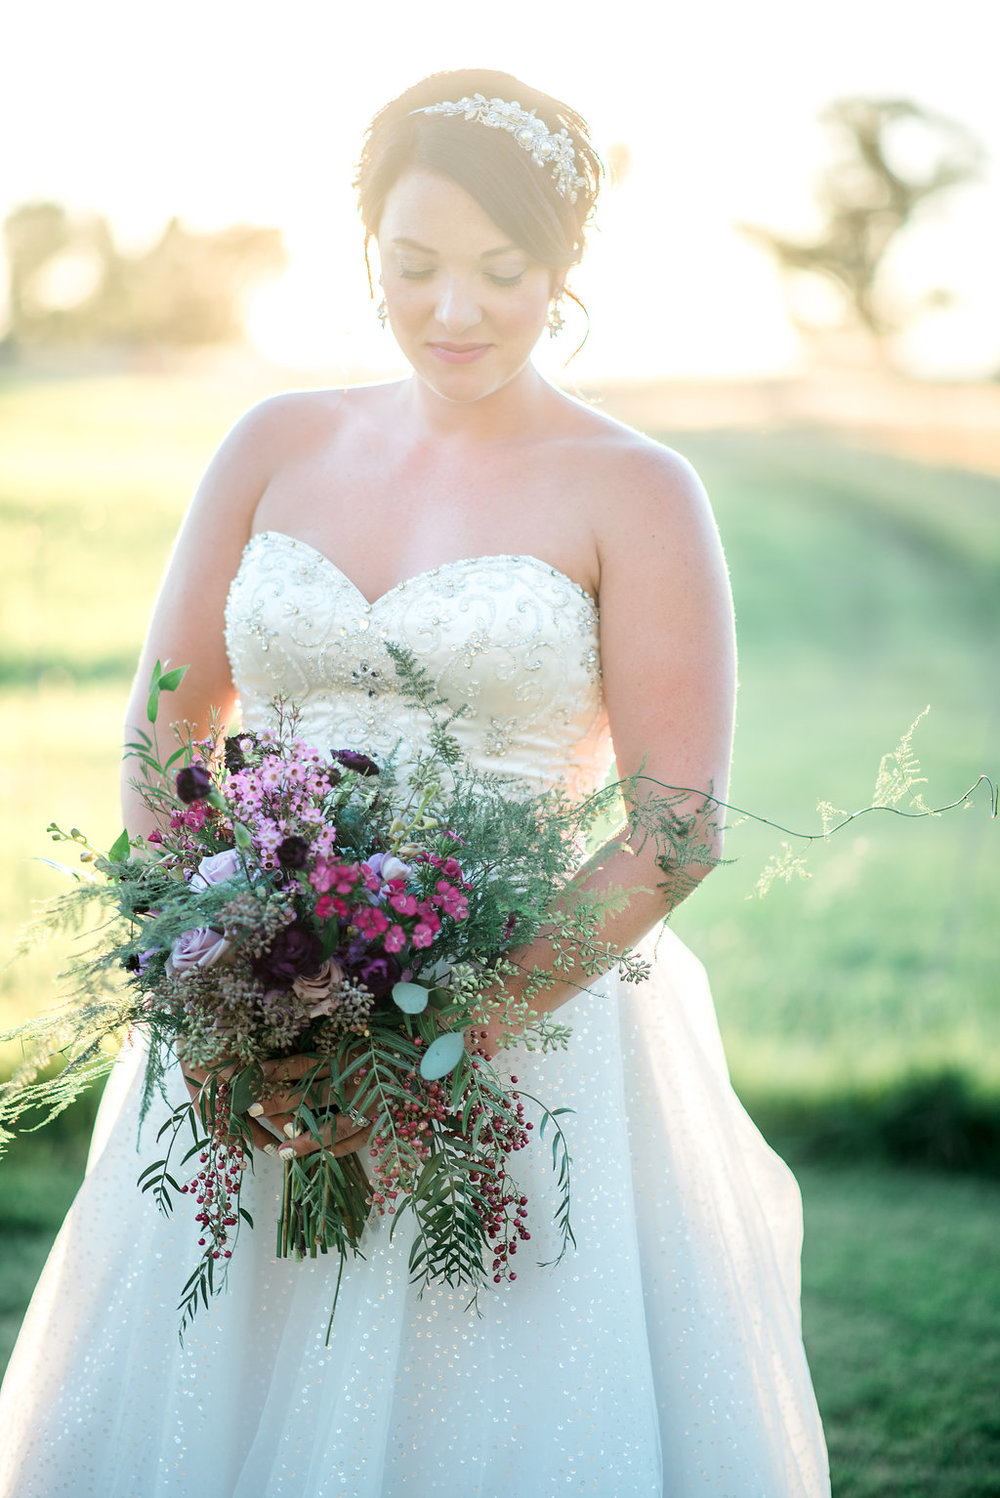 Owens-Wedding-40.jpg